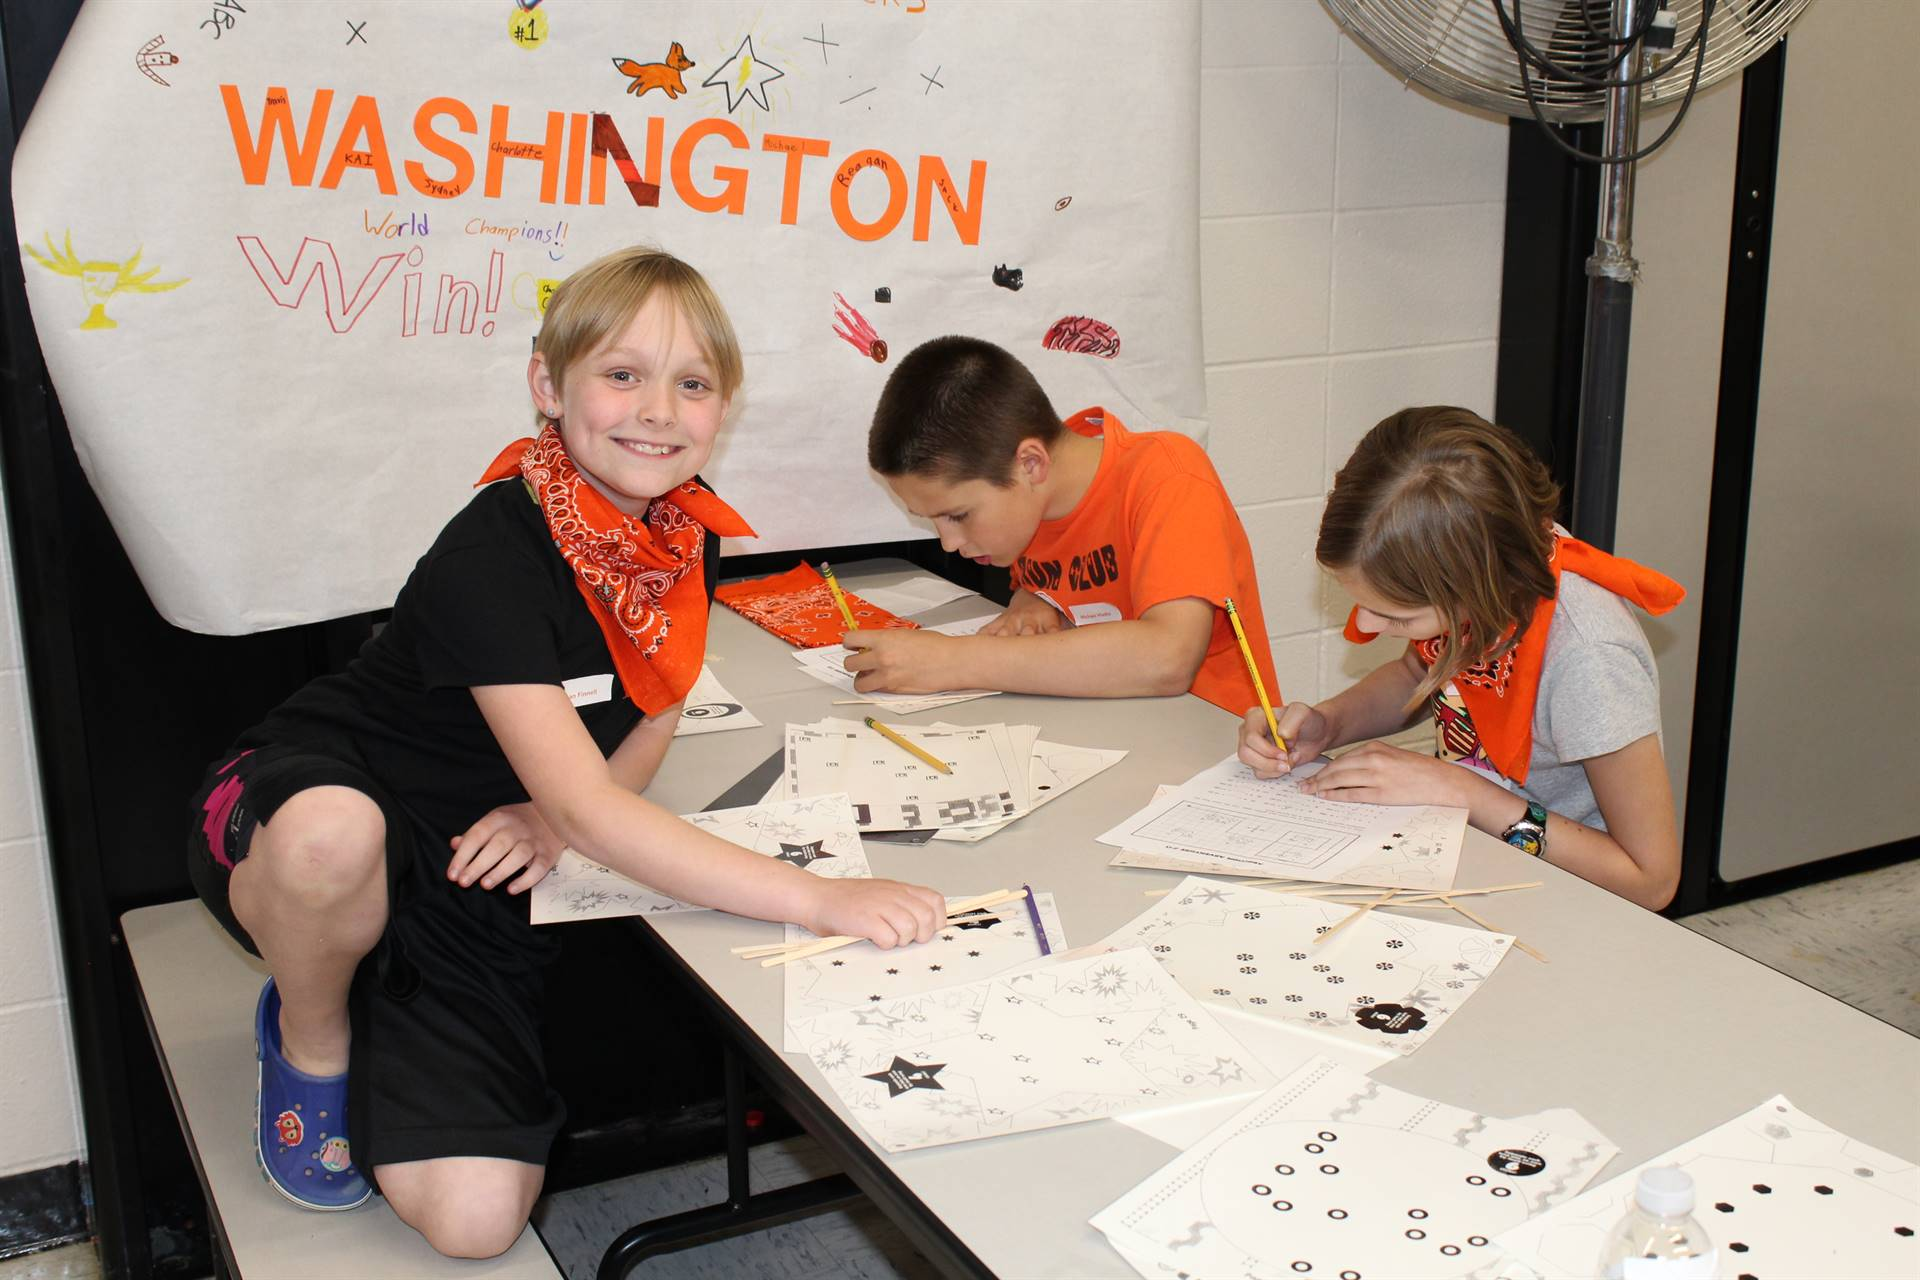 Washington students working on puzzles